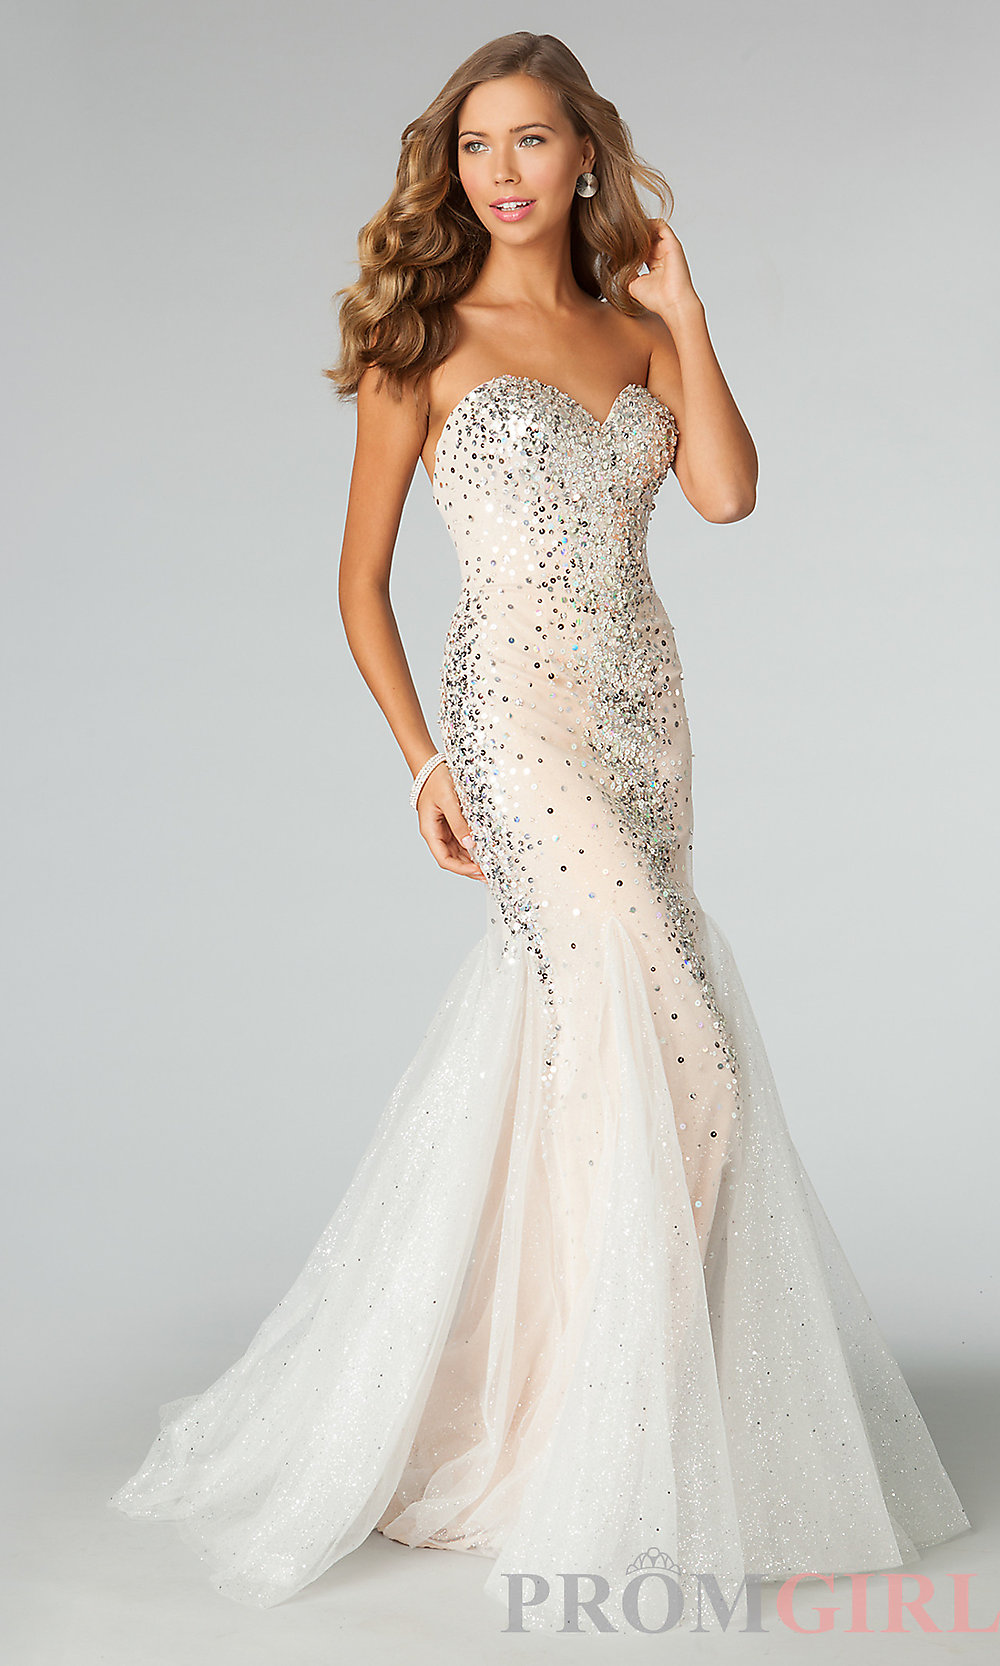 Latest Fancy Gowns, Prom and Cocktail dresses for Weddings and Parties 2014-2015 (1)